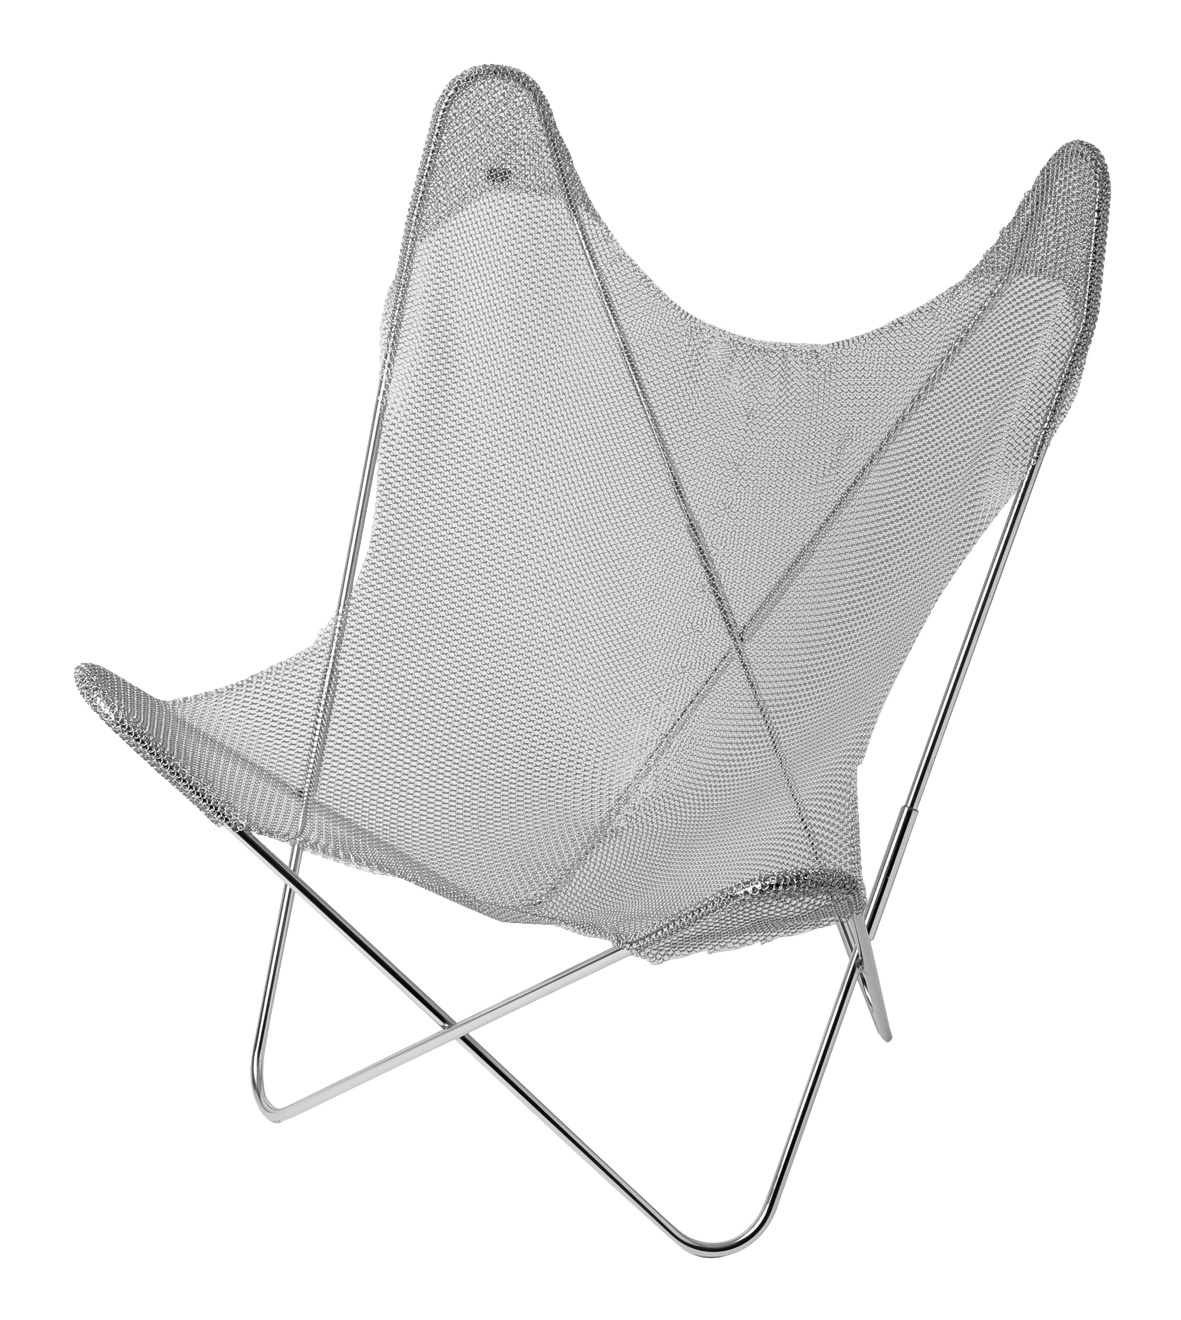 airborne butterfly chair spandex folding covers aa by le labo metallkettengewebe